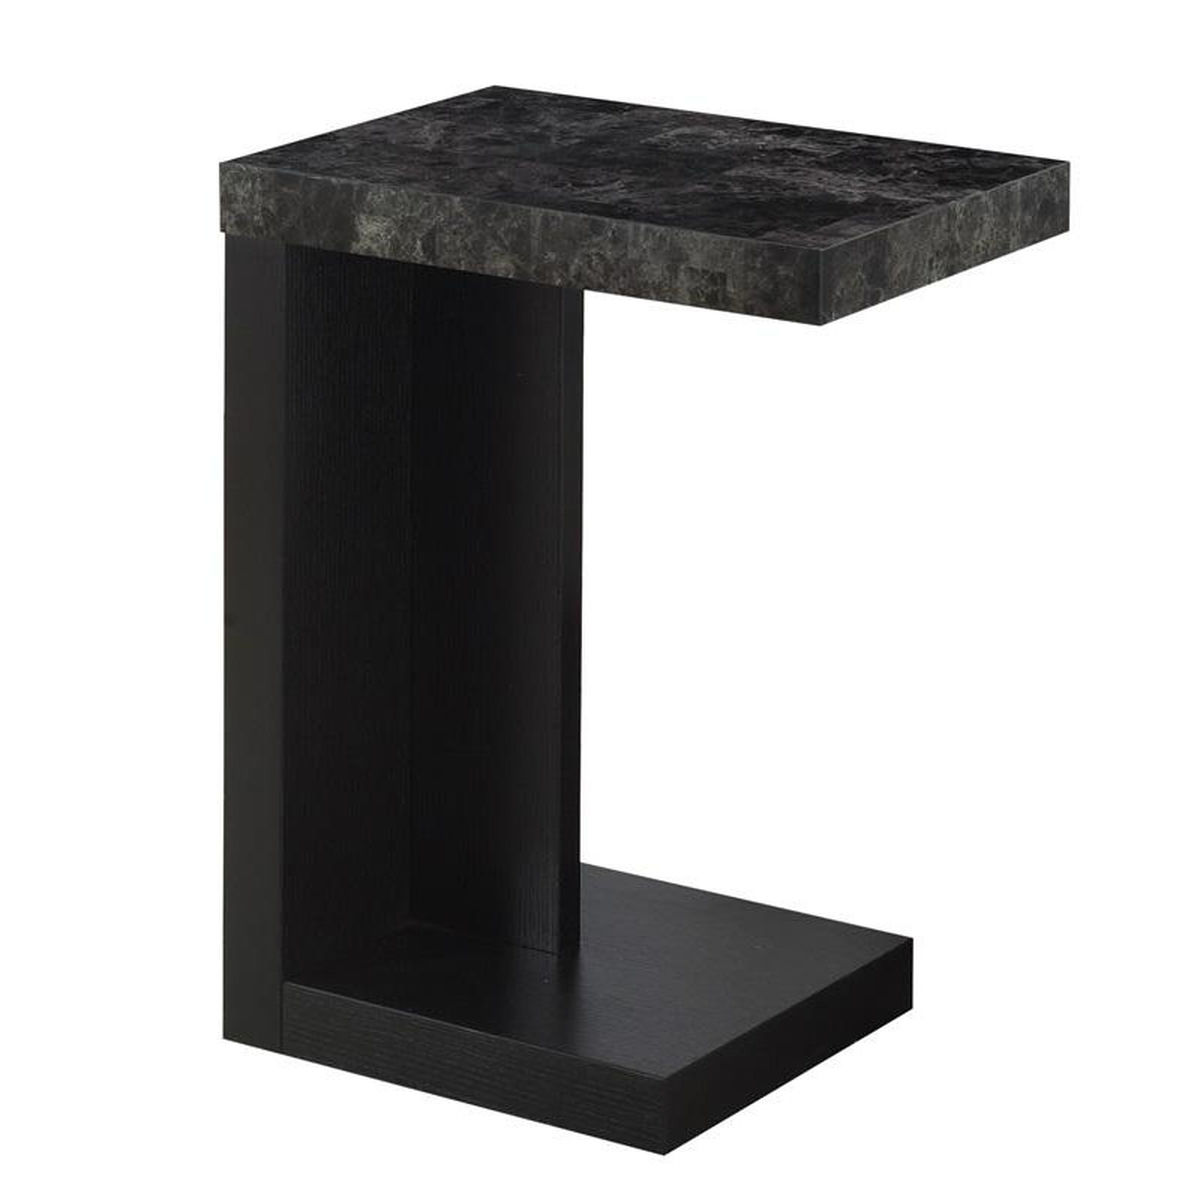 black sofa accent table bizchair monarch specialties msp main faux marble our modern slide under with gray top unfinished chairs garden storage solutions small half moon end